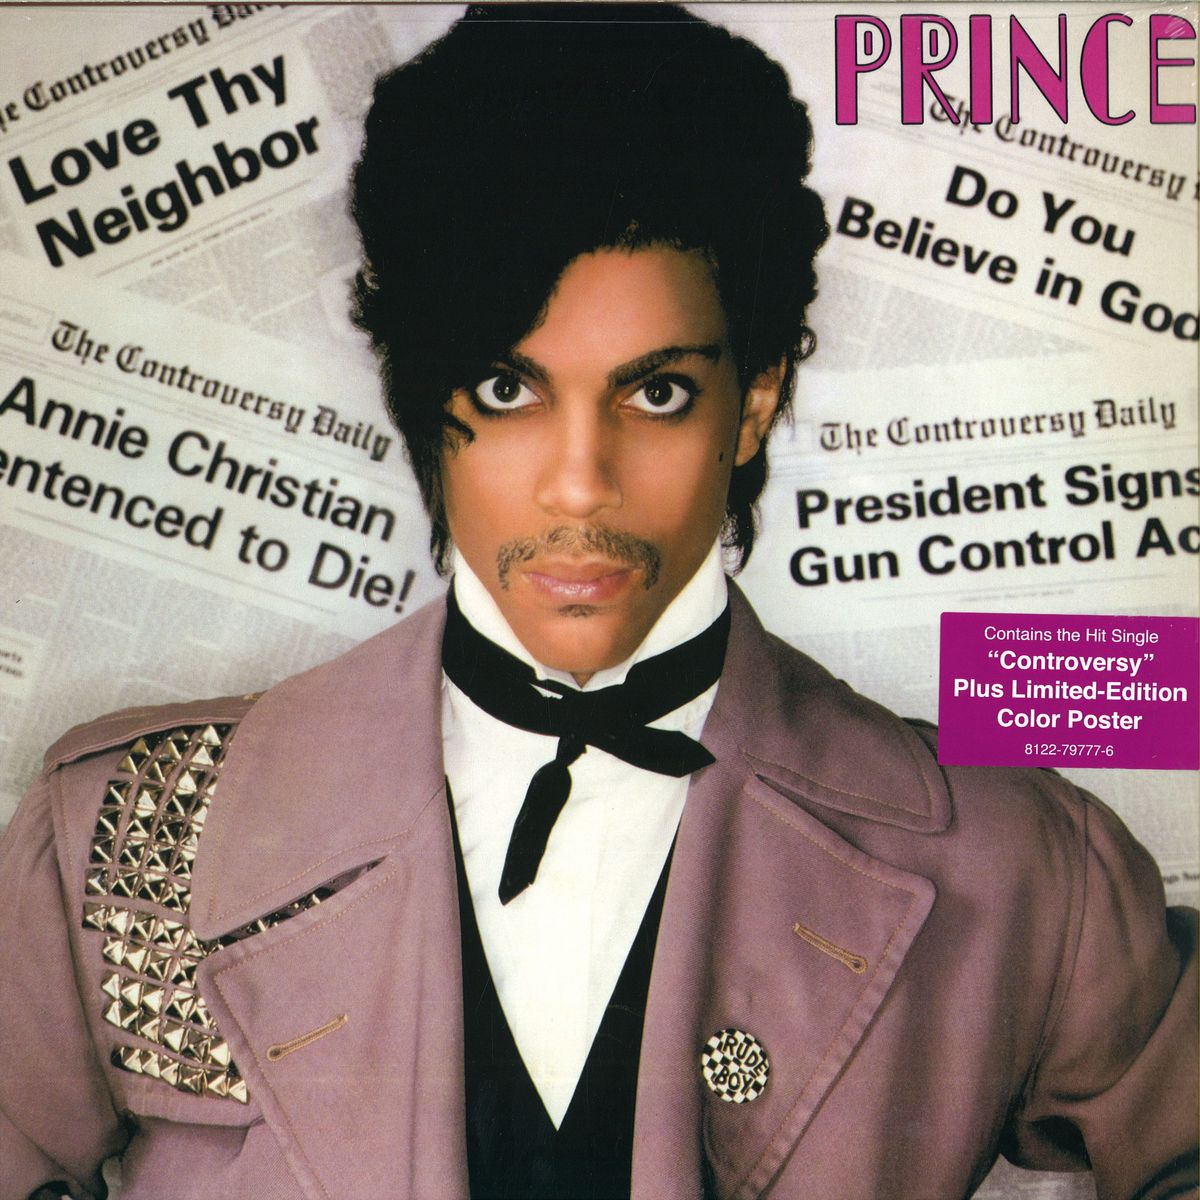 Prince controversy sony music entertainment 8122797776 12inch